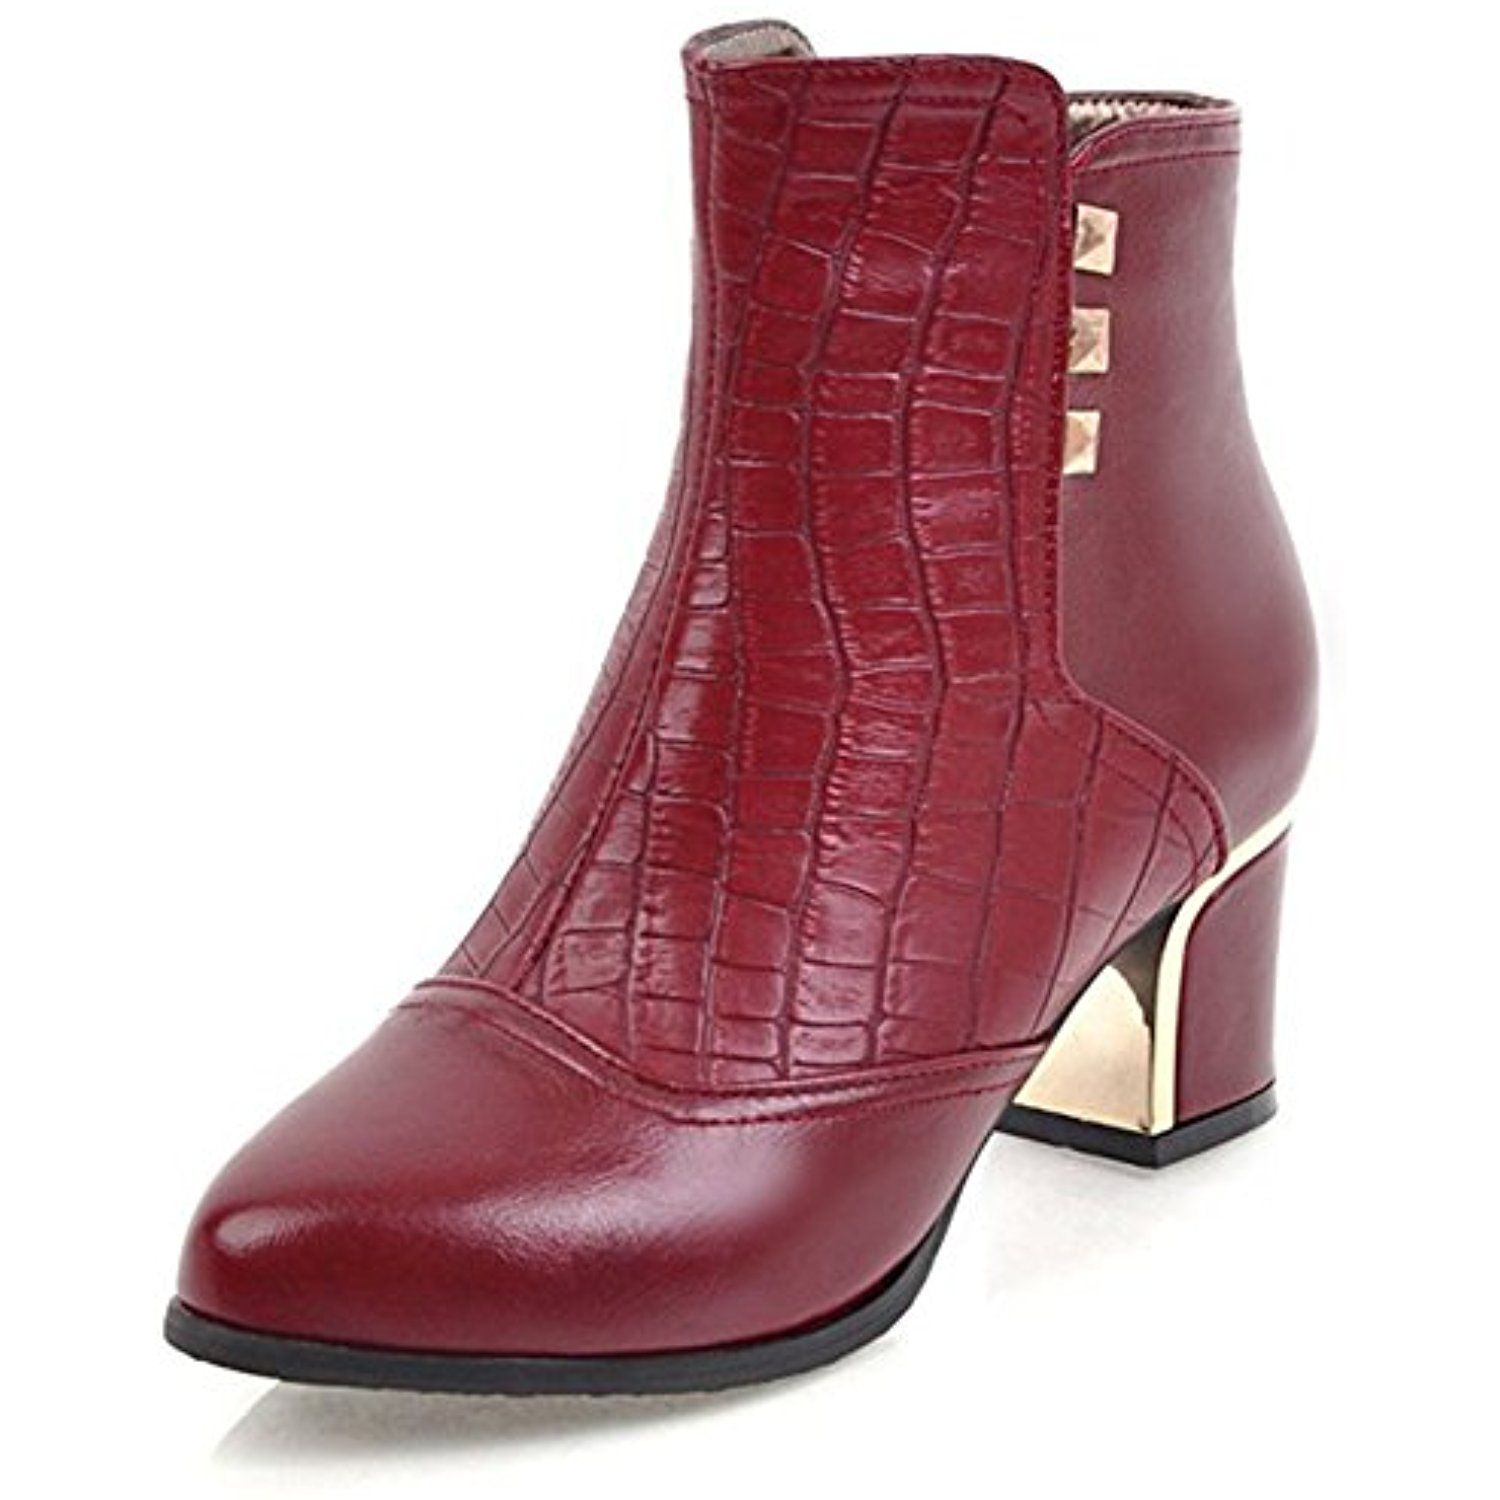 Women's Fashion Studded Dress Inside Zip Up Booties Mid Block Heel Round Toe Ankle Boots